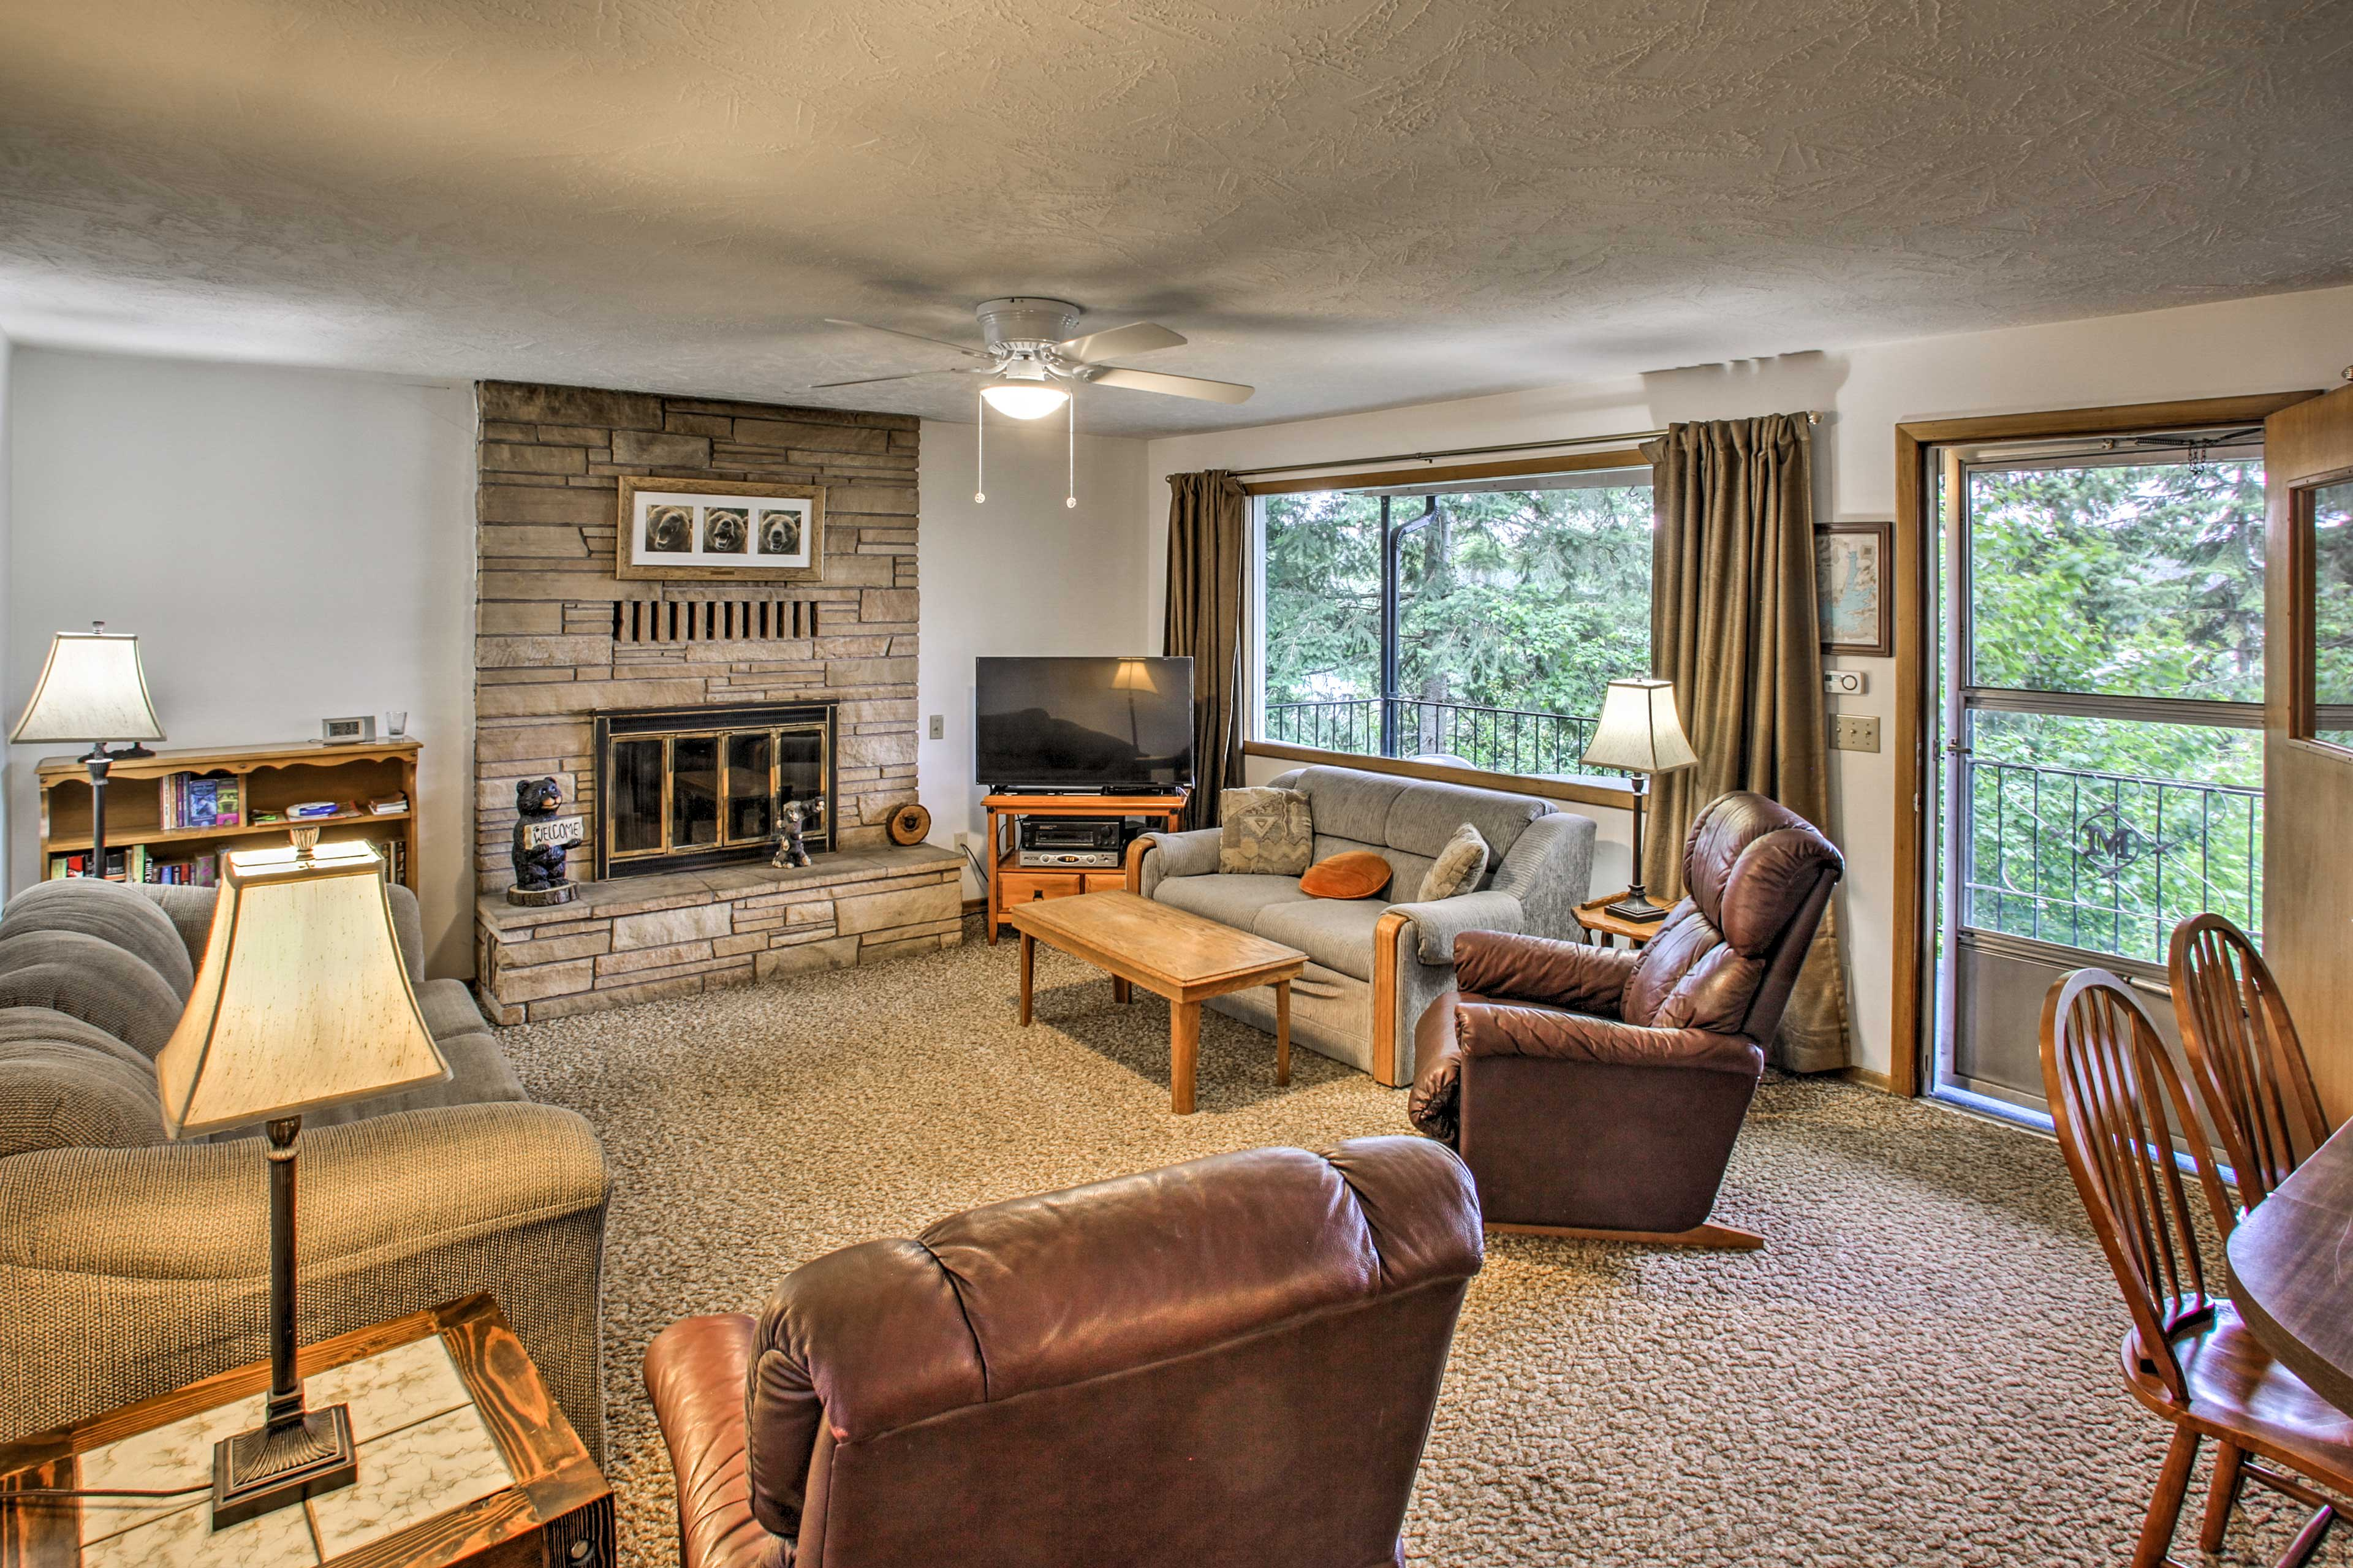 Located on Hayden Lake, this home features 3 bedrooms and 2 bathrooms.